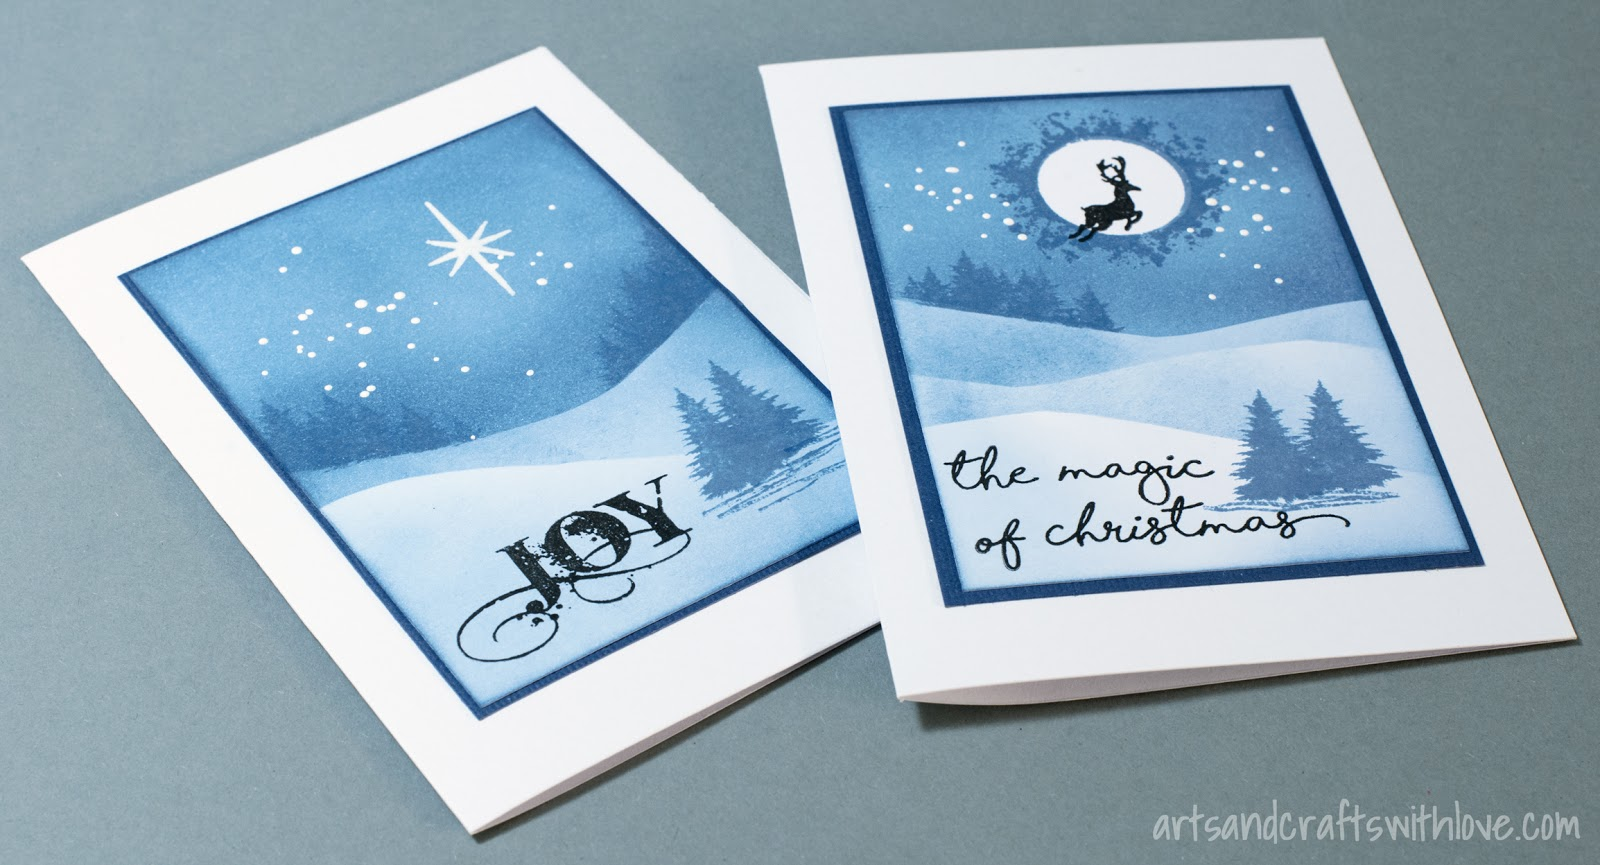 Elinas arts and crafts simple and easy christmas cards for these simple designs you dont need too many supplies for colouring and stamping the backgrounds i only used one blue distress ink colour faded m4hsunfo